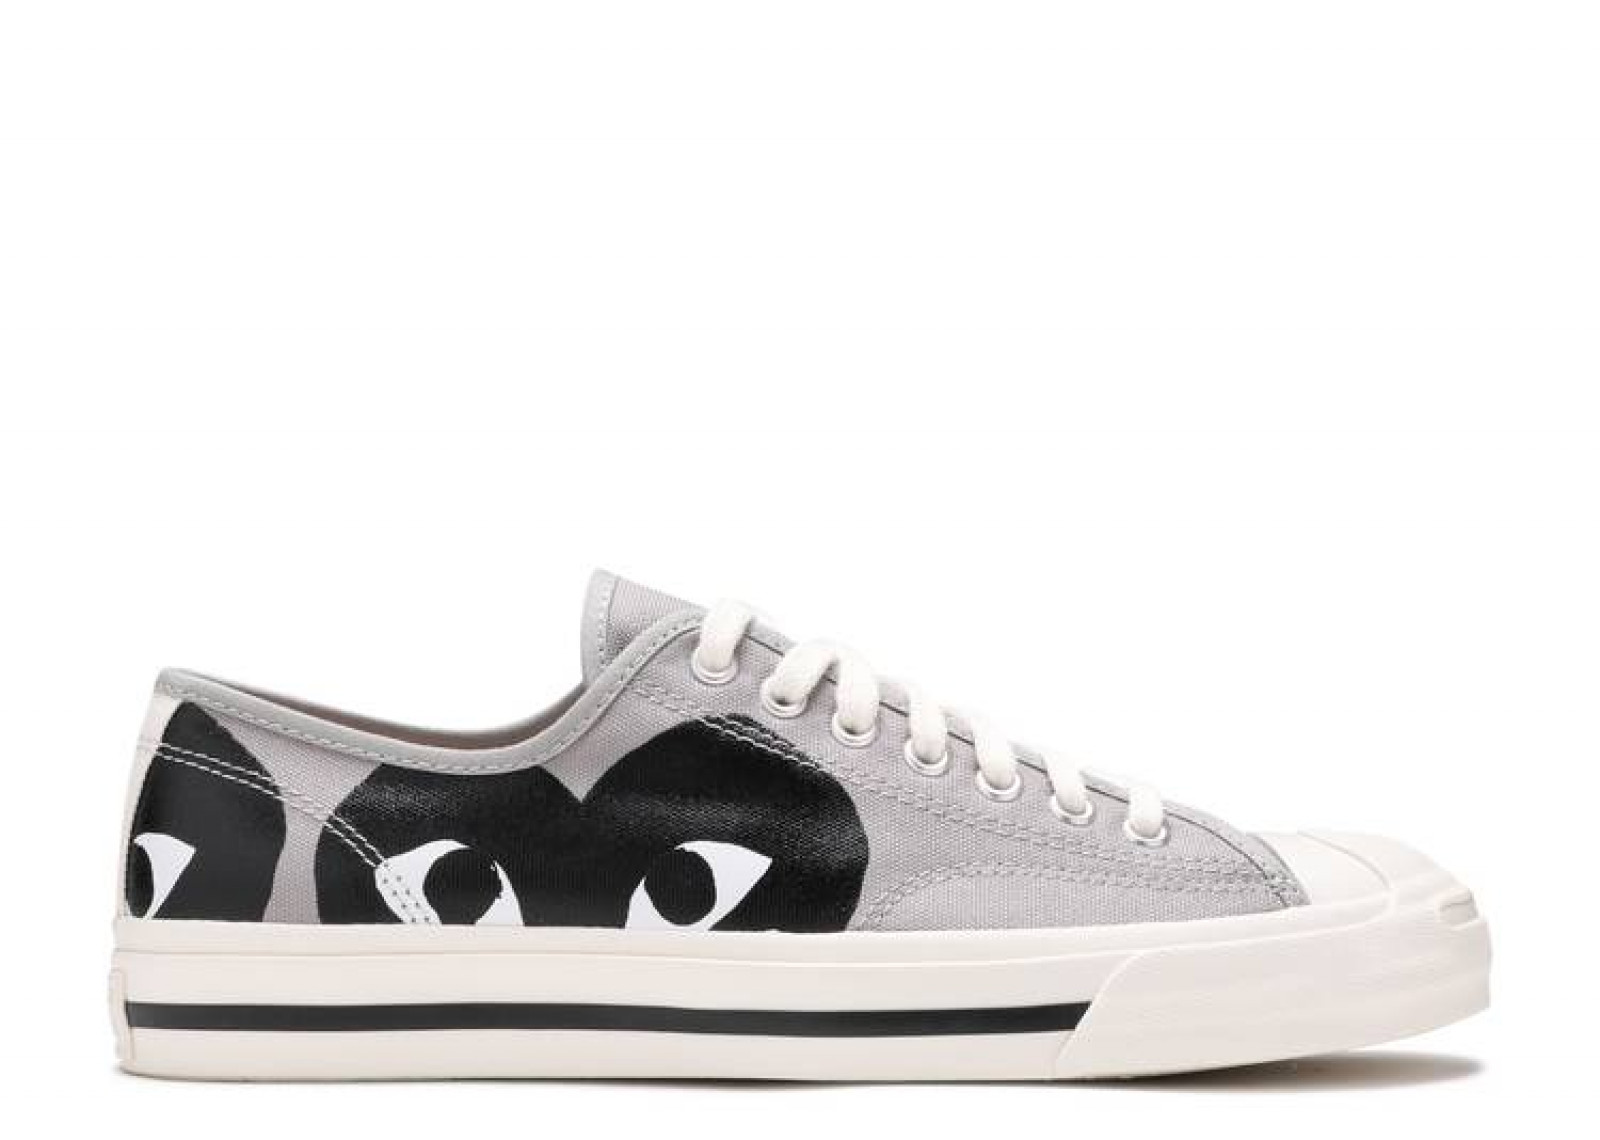 Converse Jack Purcell Comme Des Garcons PLAY Grey Black image 1